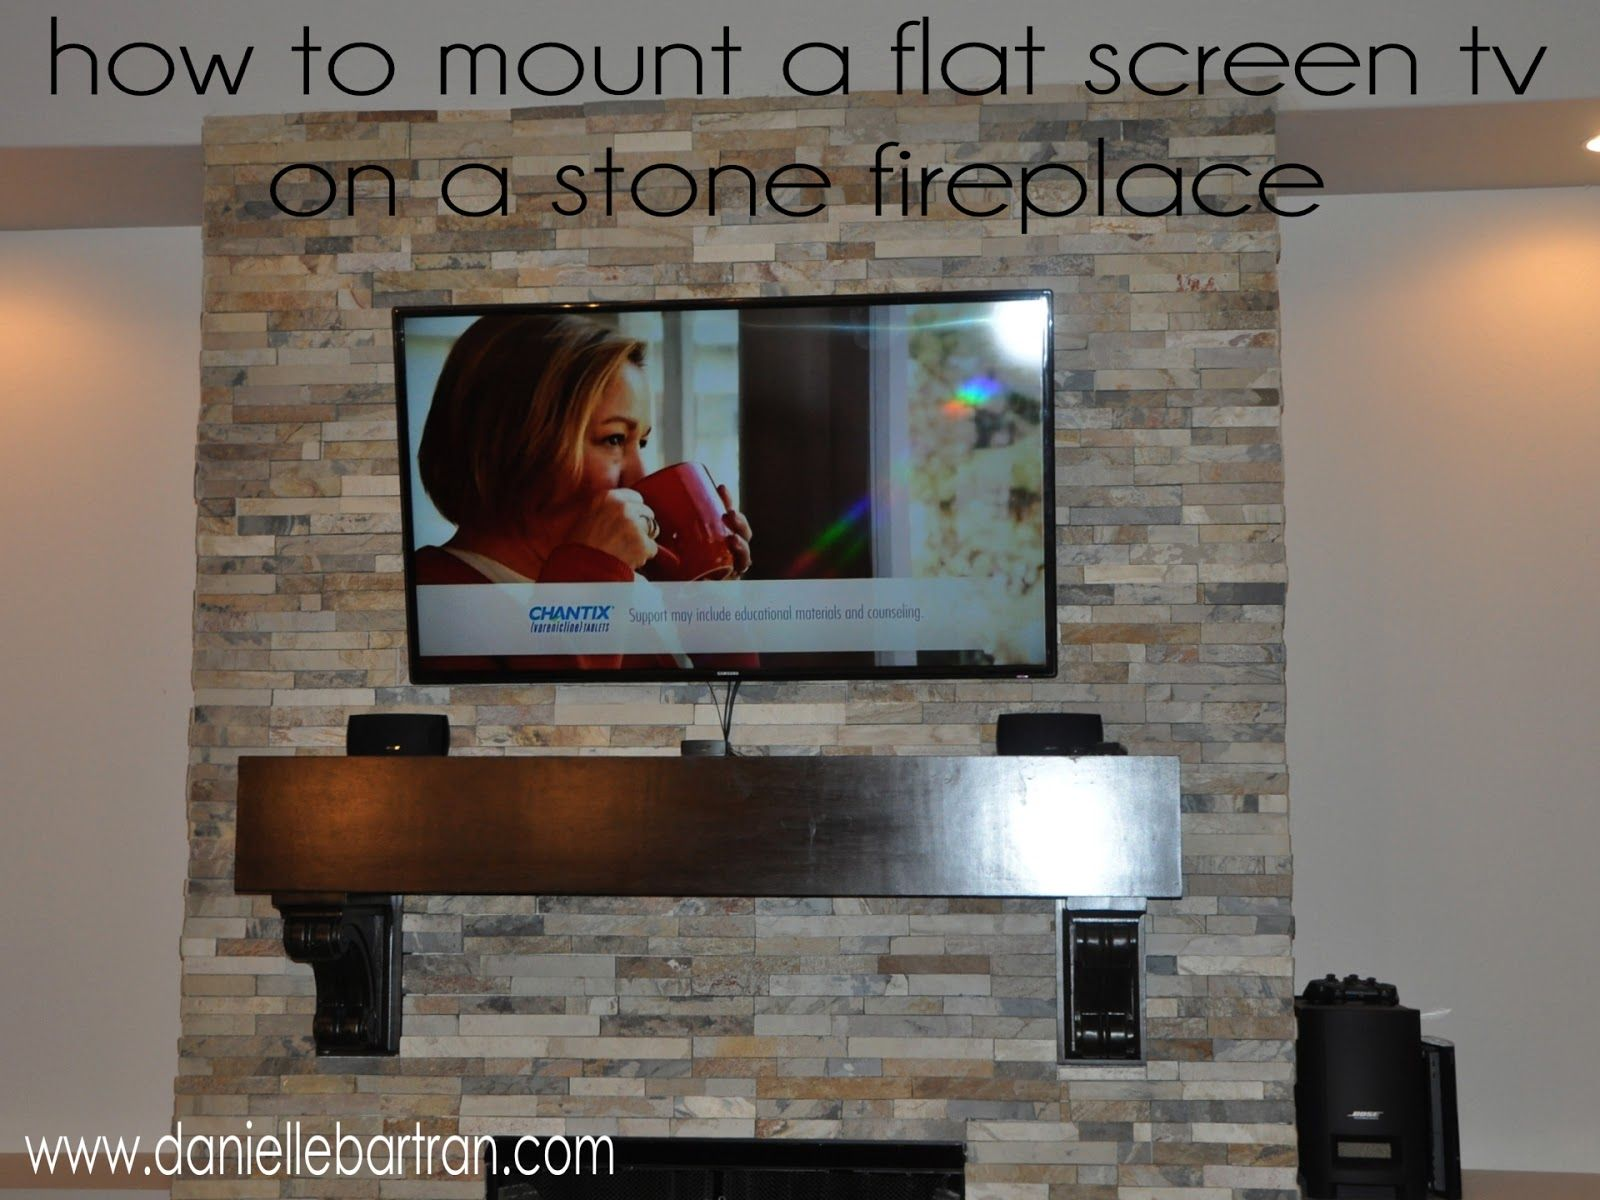 Made How To Mount A Flat Screen Tv On A Stone Fireplace Diy Tv Above Fireplace Stone Fireplace Diy Fireplace